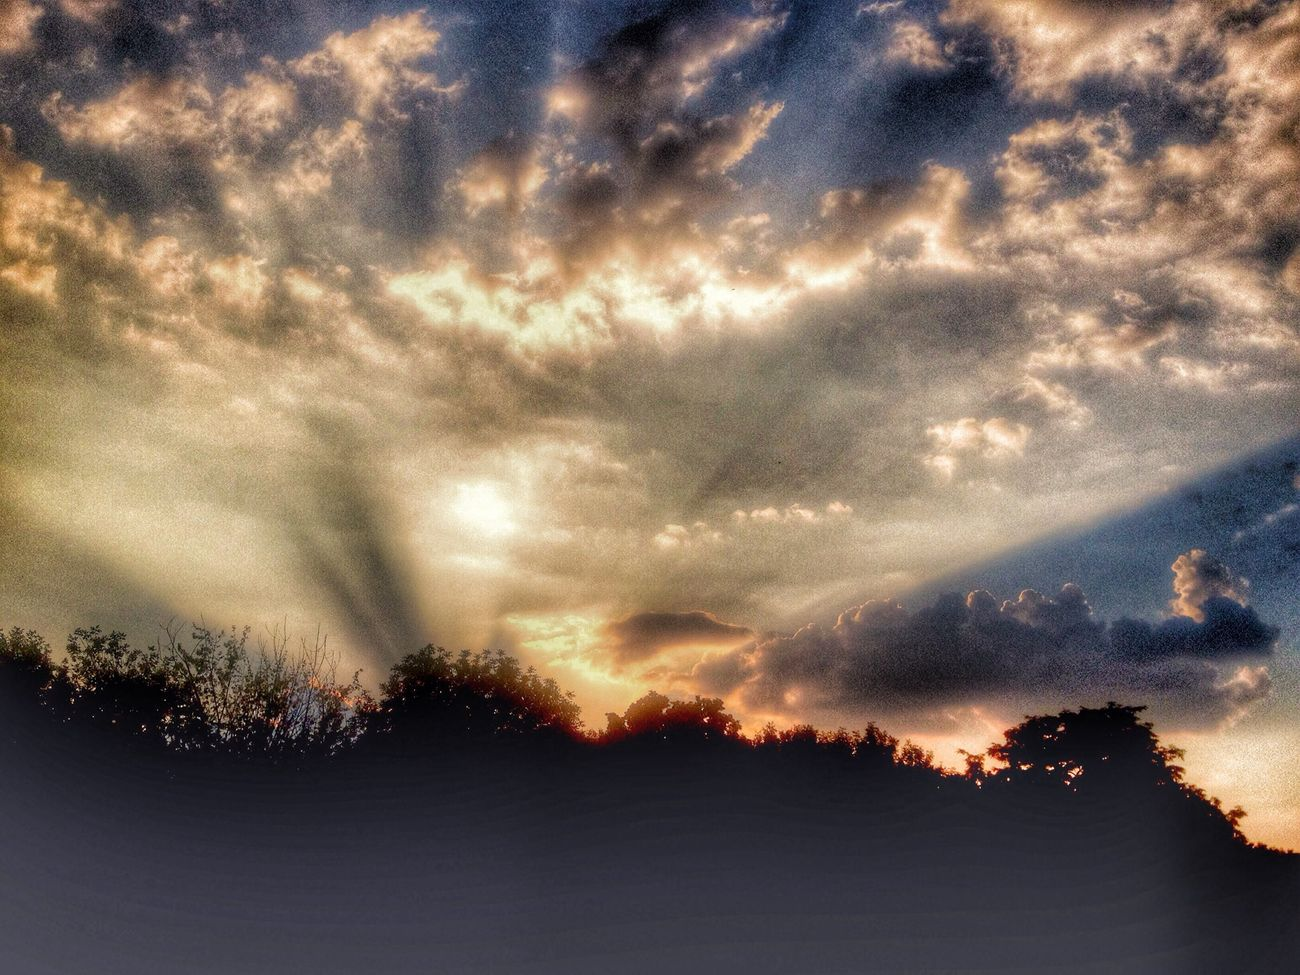 Hdr_Collection Silhouette